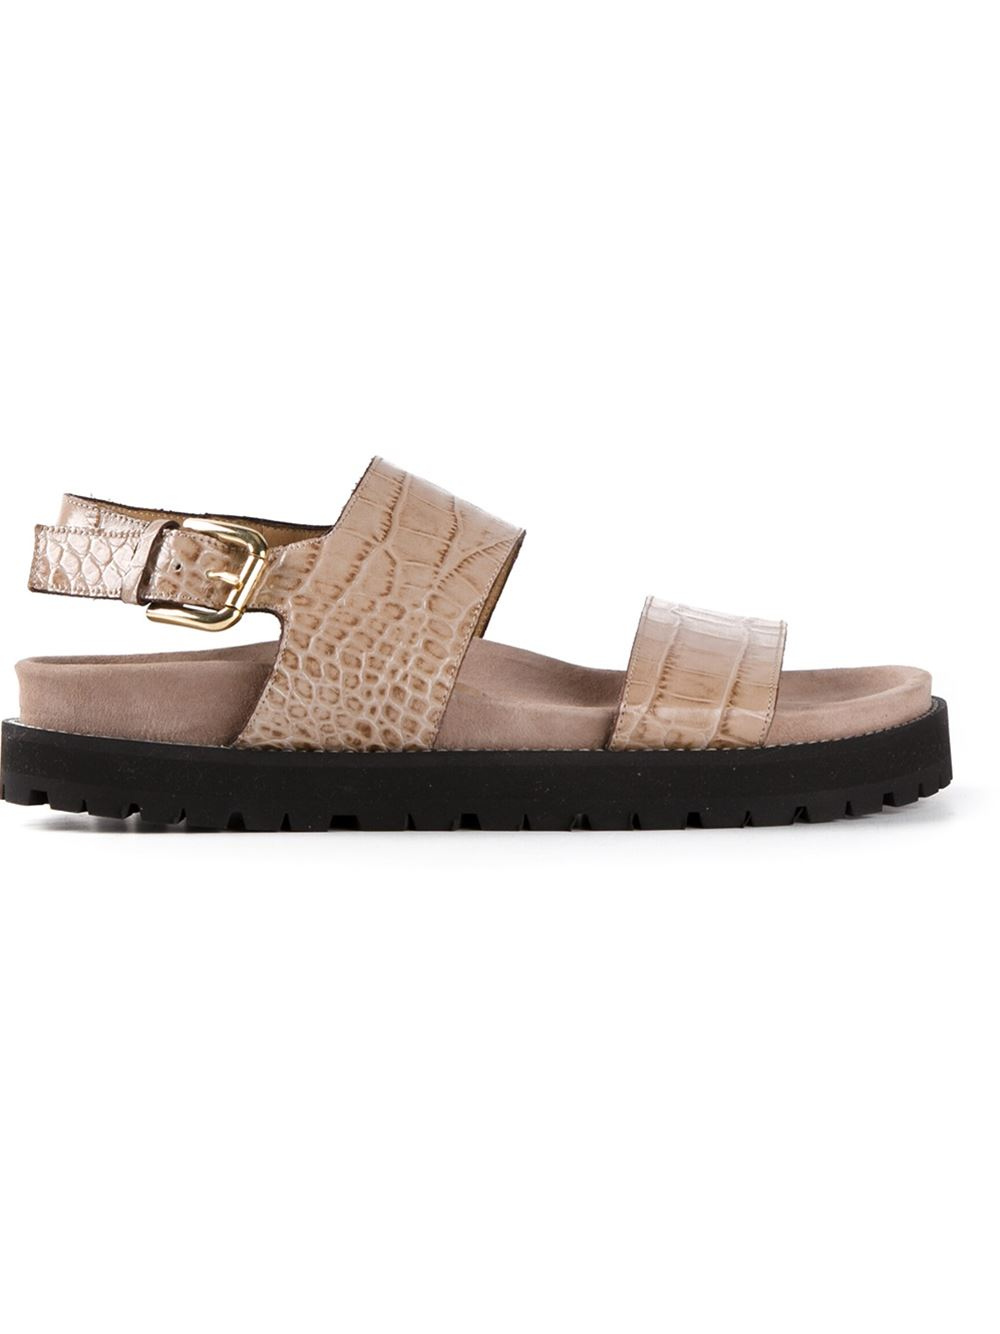 FOOTWEAR - Sandals Erika Cavallini Semi Couture